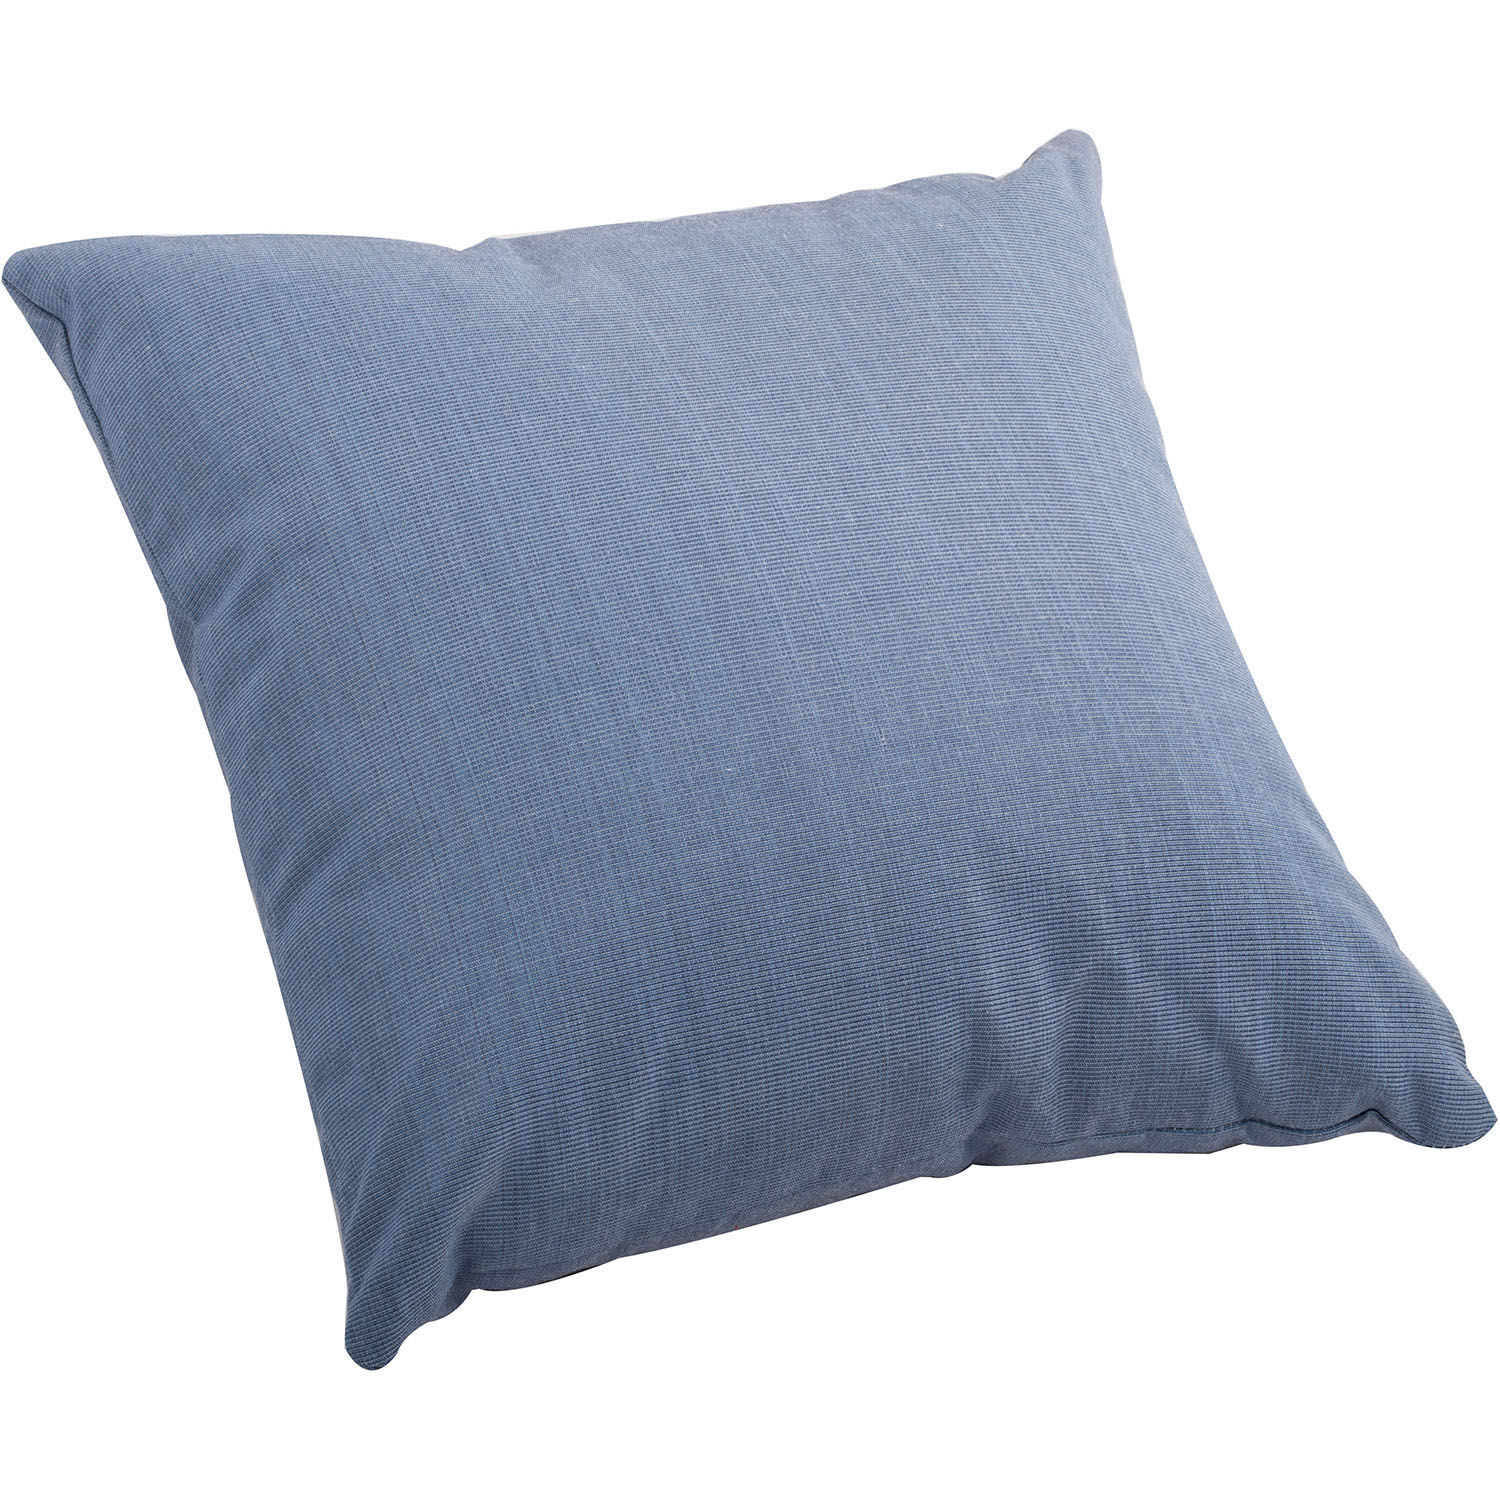 Outdoor Lizzy Pillow Country Blue: Size Options